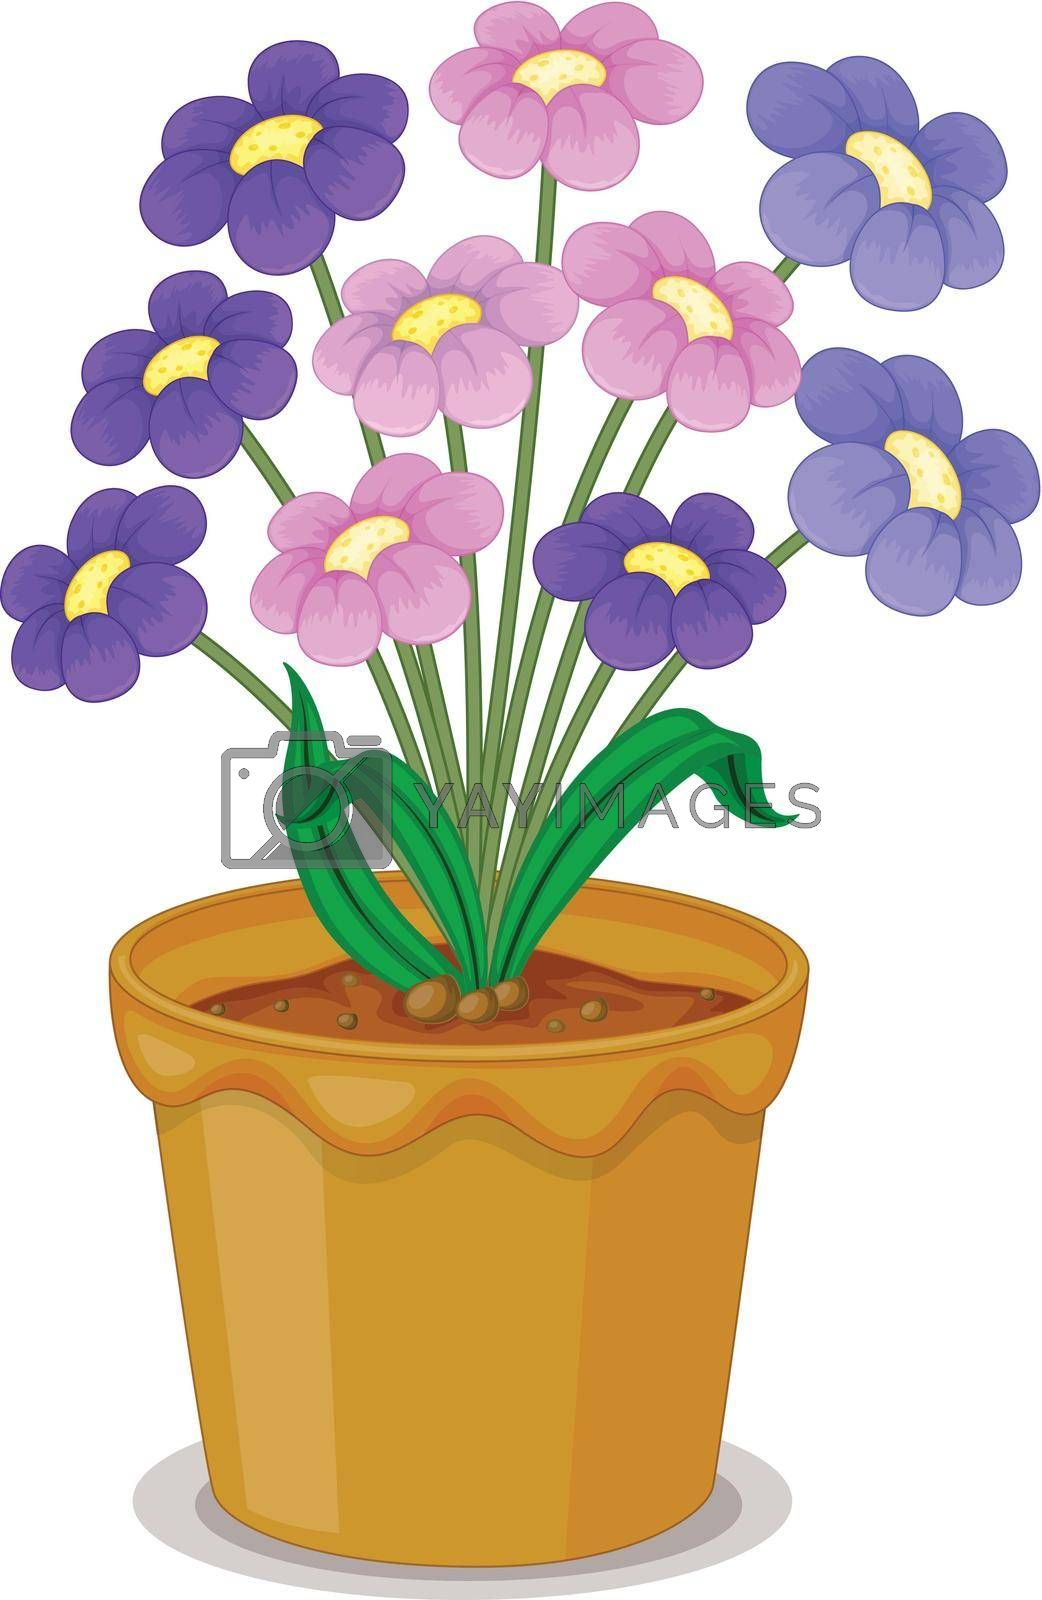 detailed illustration of flowers and a pot on a white background